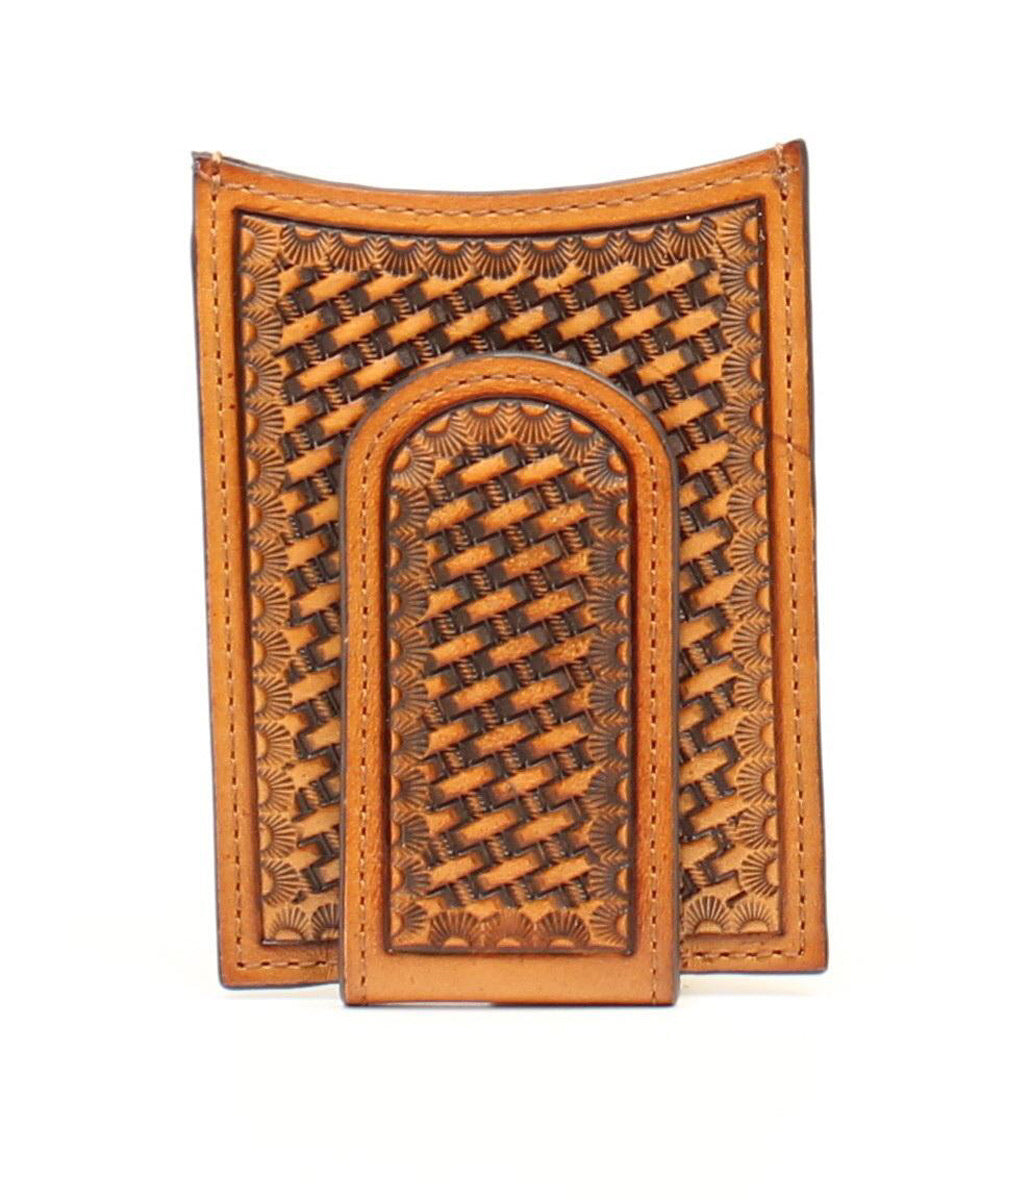 NOCONA MEN WALLET CLIP BASKET WEAVE N5428908